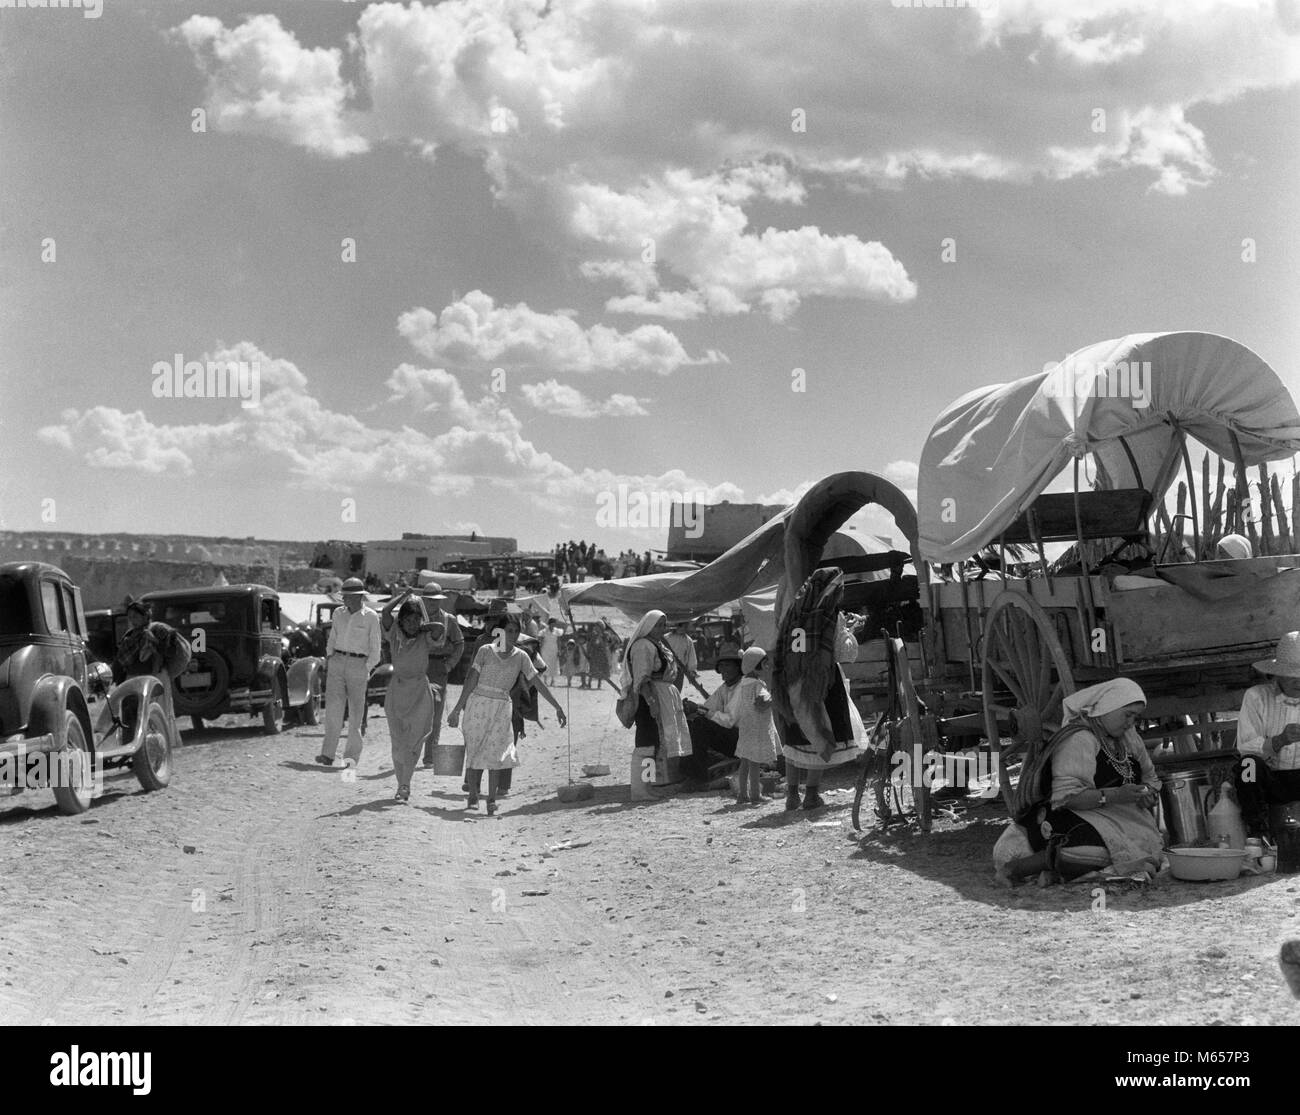 1930s PEOPLE GATHERING FOR NATIVE AMERICAN INDIAN CORN DANCE AND FIESTA LAGUNA PUEBLO NEW MEXICO USA - i1819 HAR001 - Stock Image